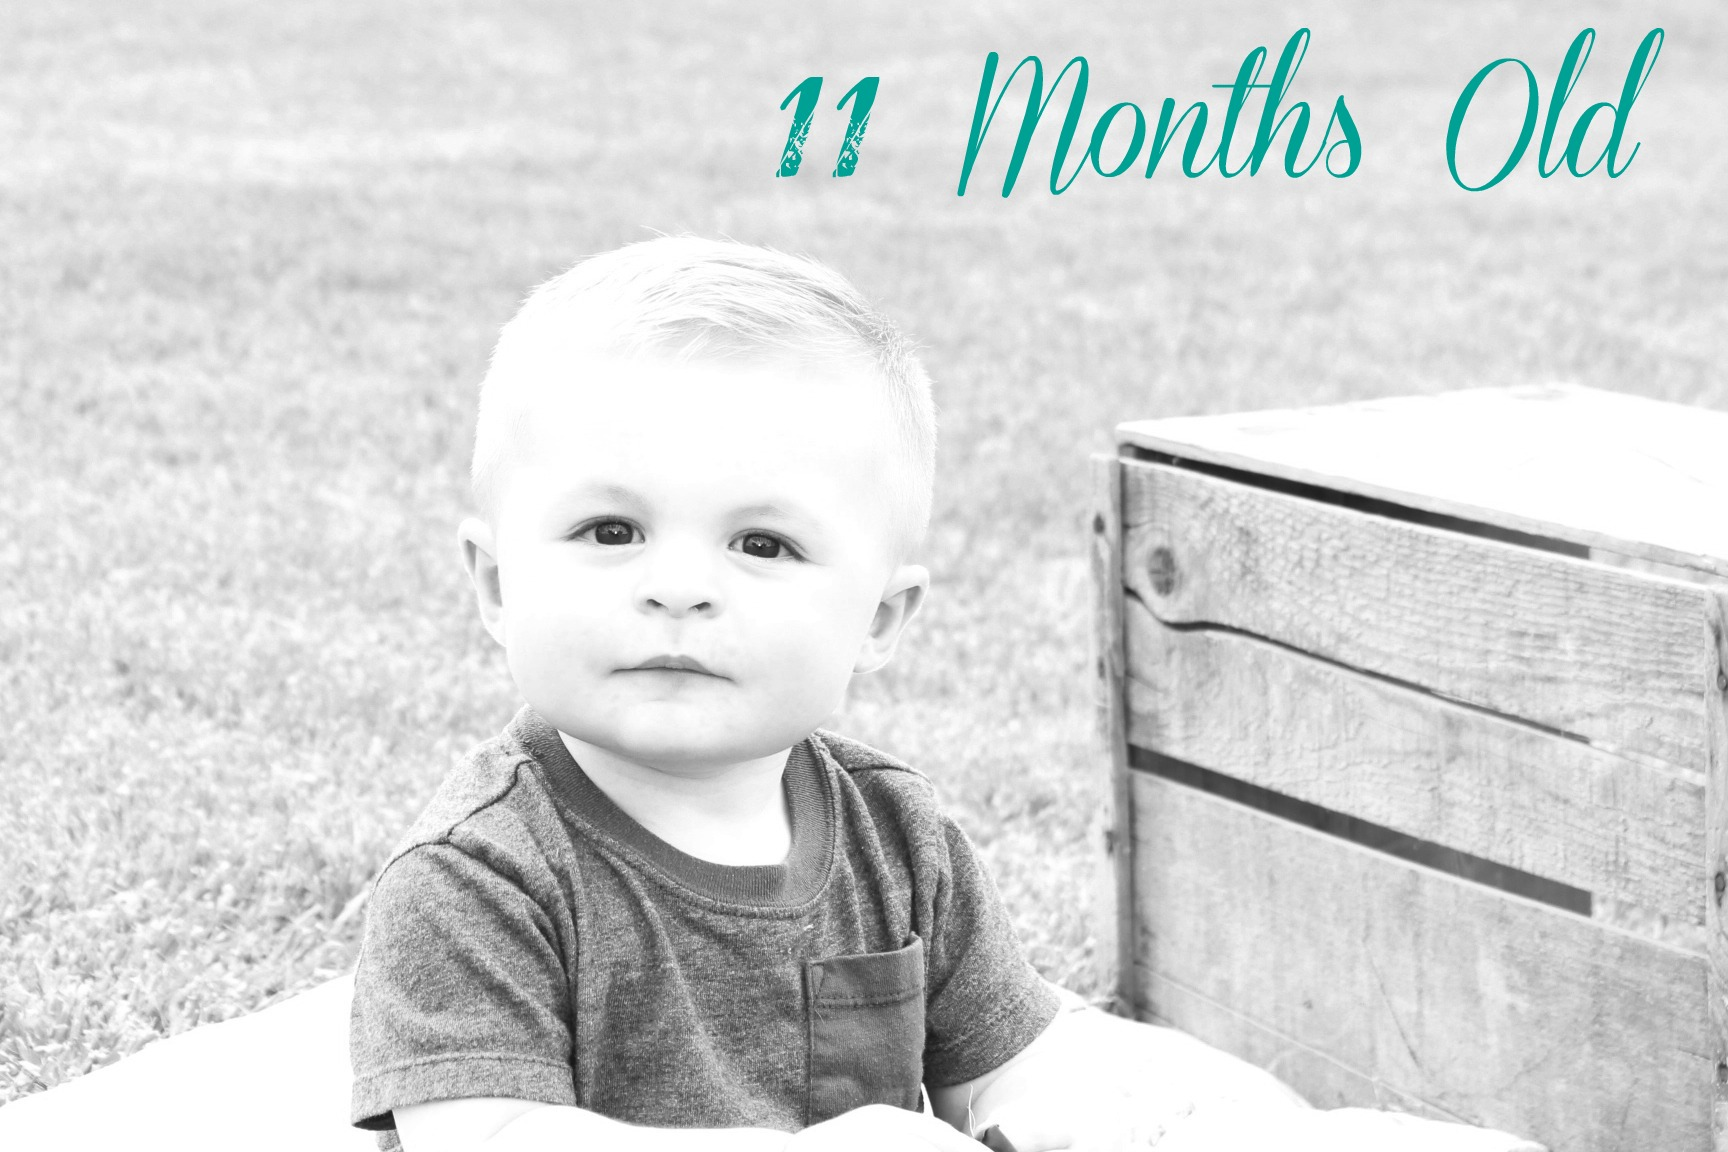 11 months old